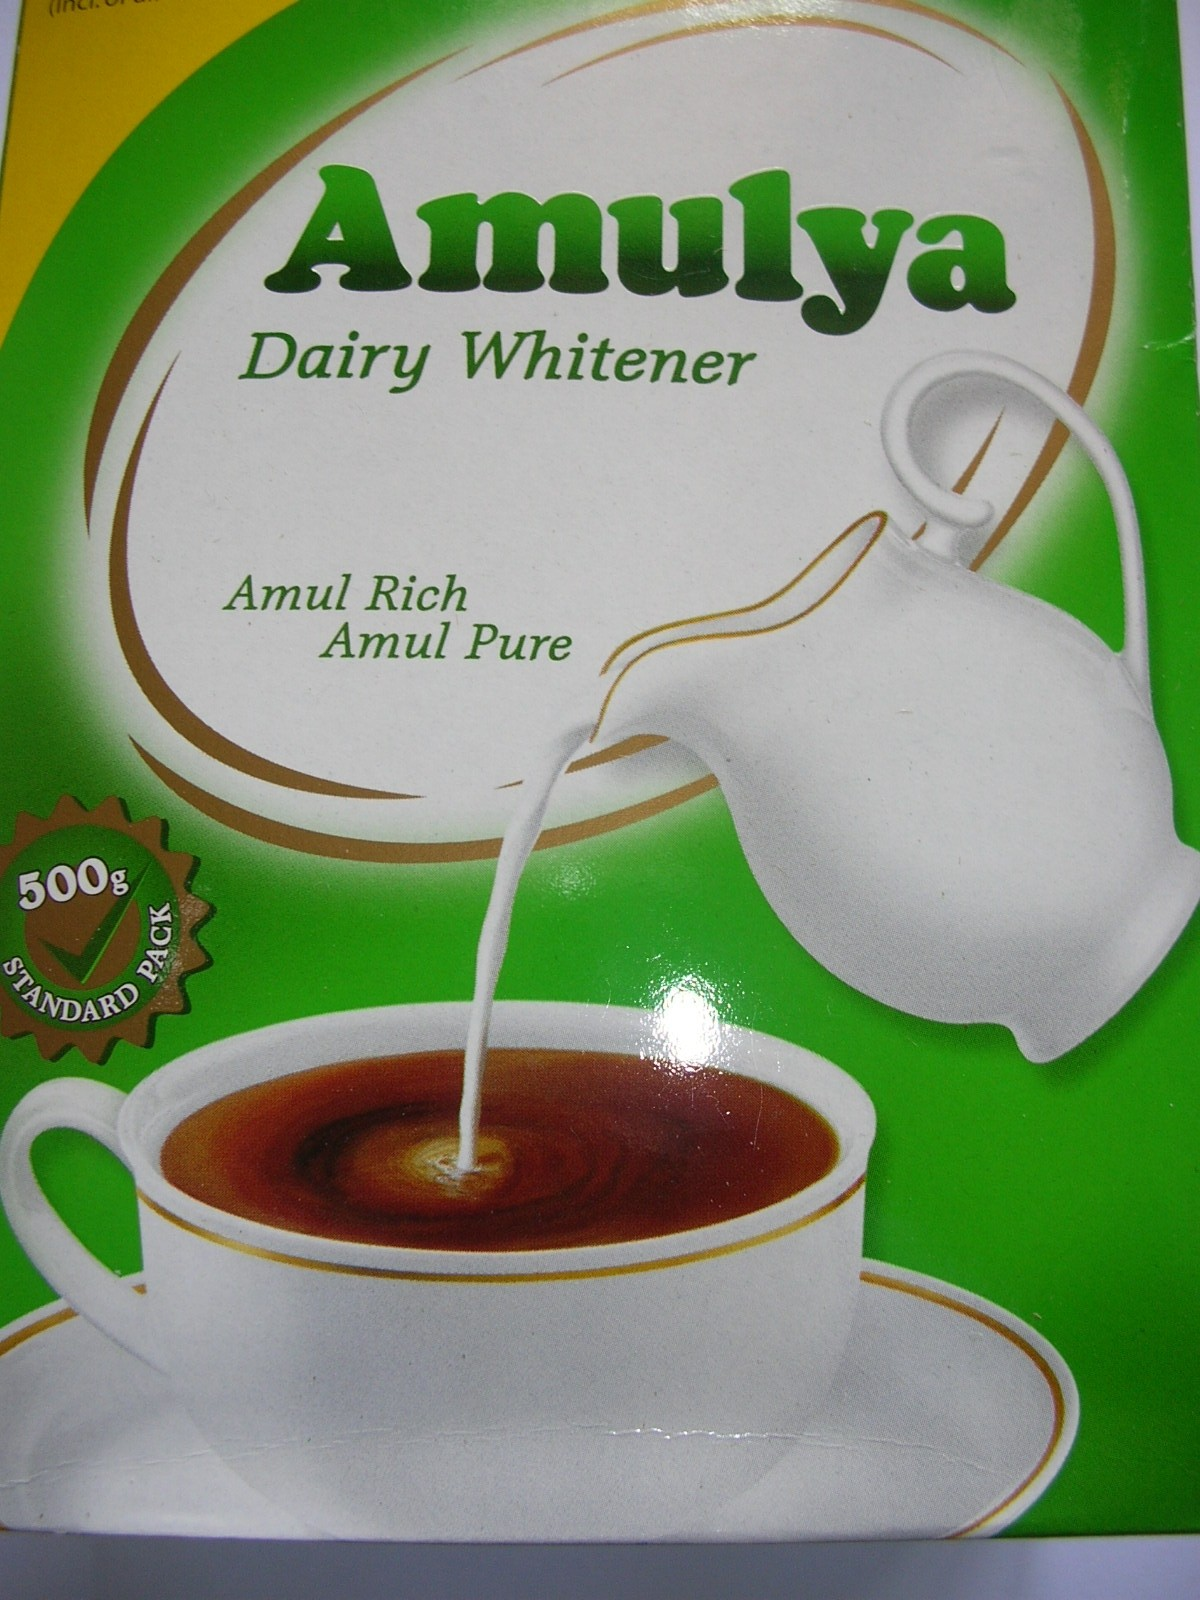 Amulya Dairy Whitener 500gm Carton